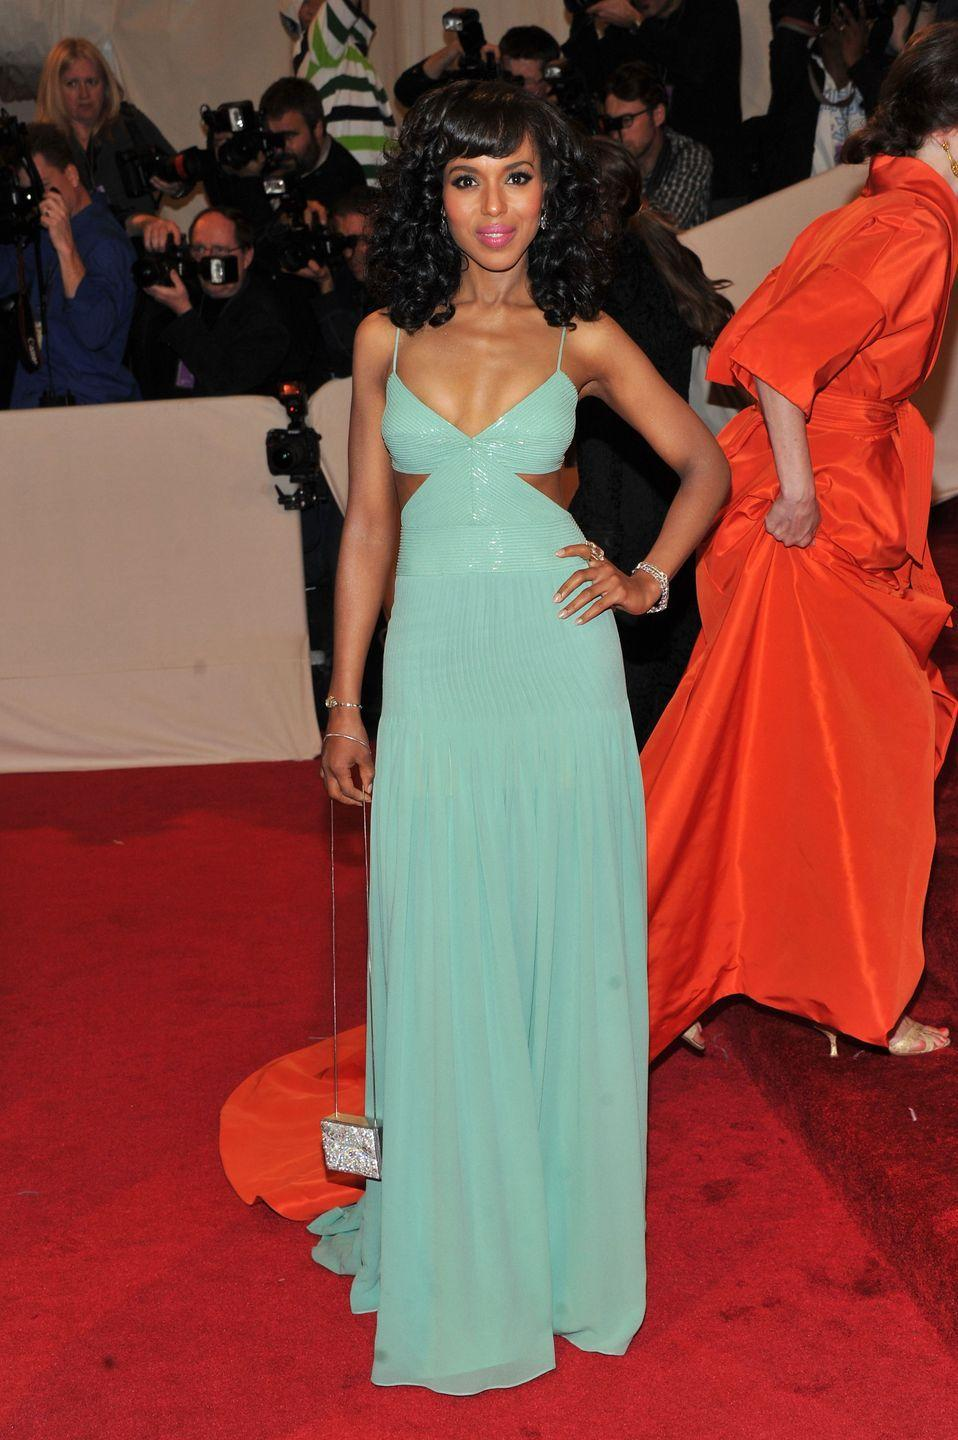 <p>For the 2011 Met Gala, Kerry Washington wore a turquoise dress with side cutouts reminiscent of Jasmine. </p>